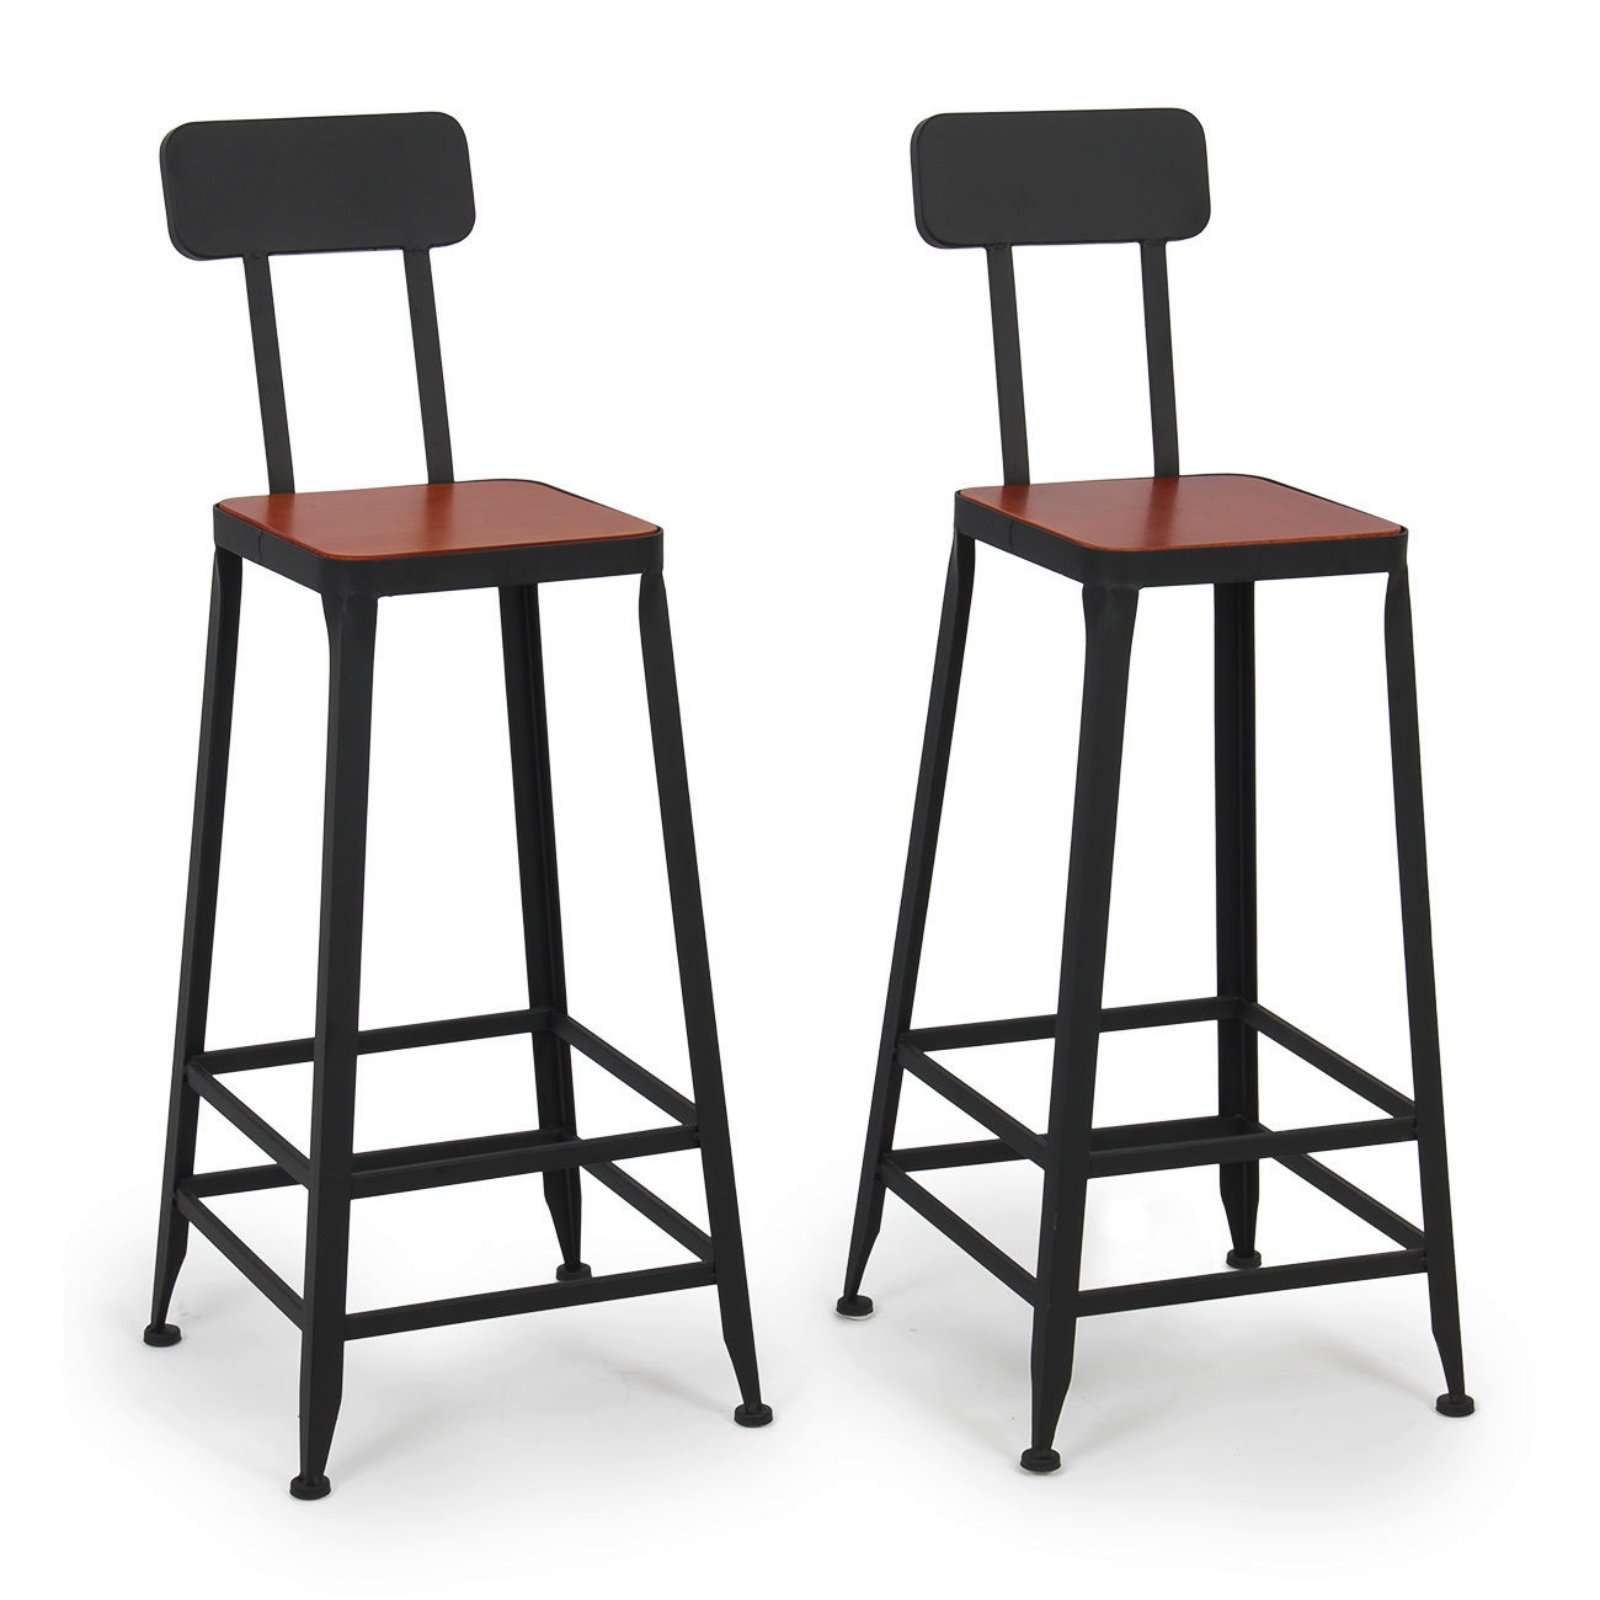 Set of 2 Industrial Bar Stools Pub Seat Durable Powder Coated finish Chairs Steel Height Counter New #577